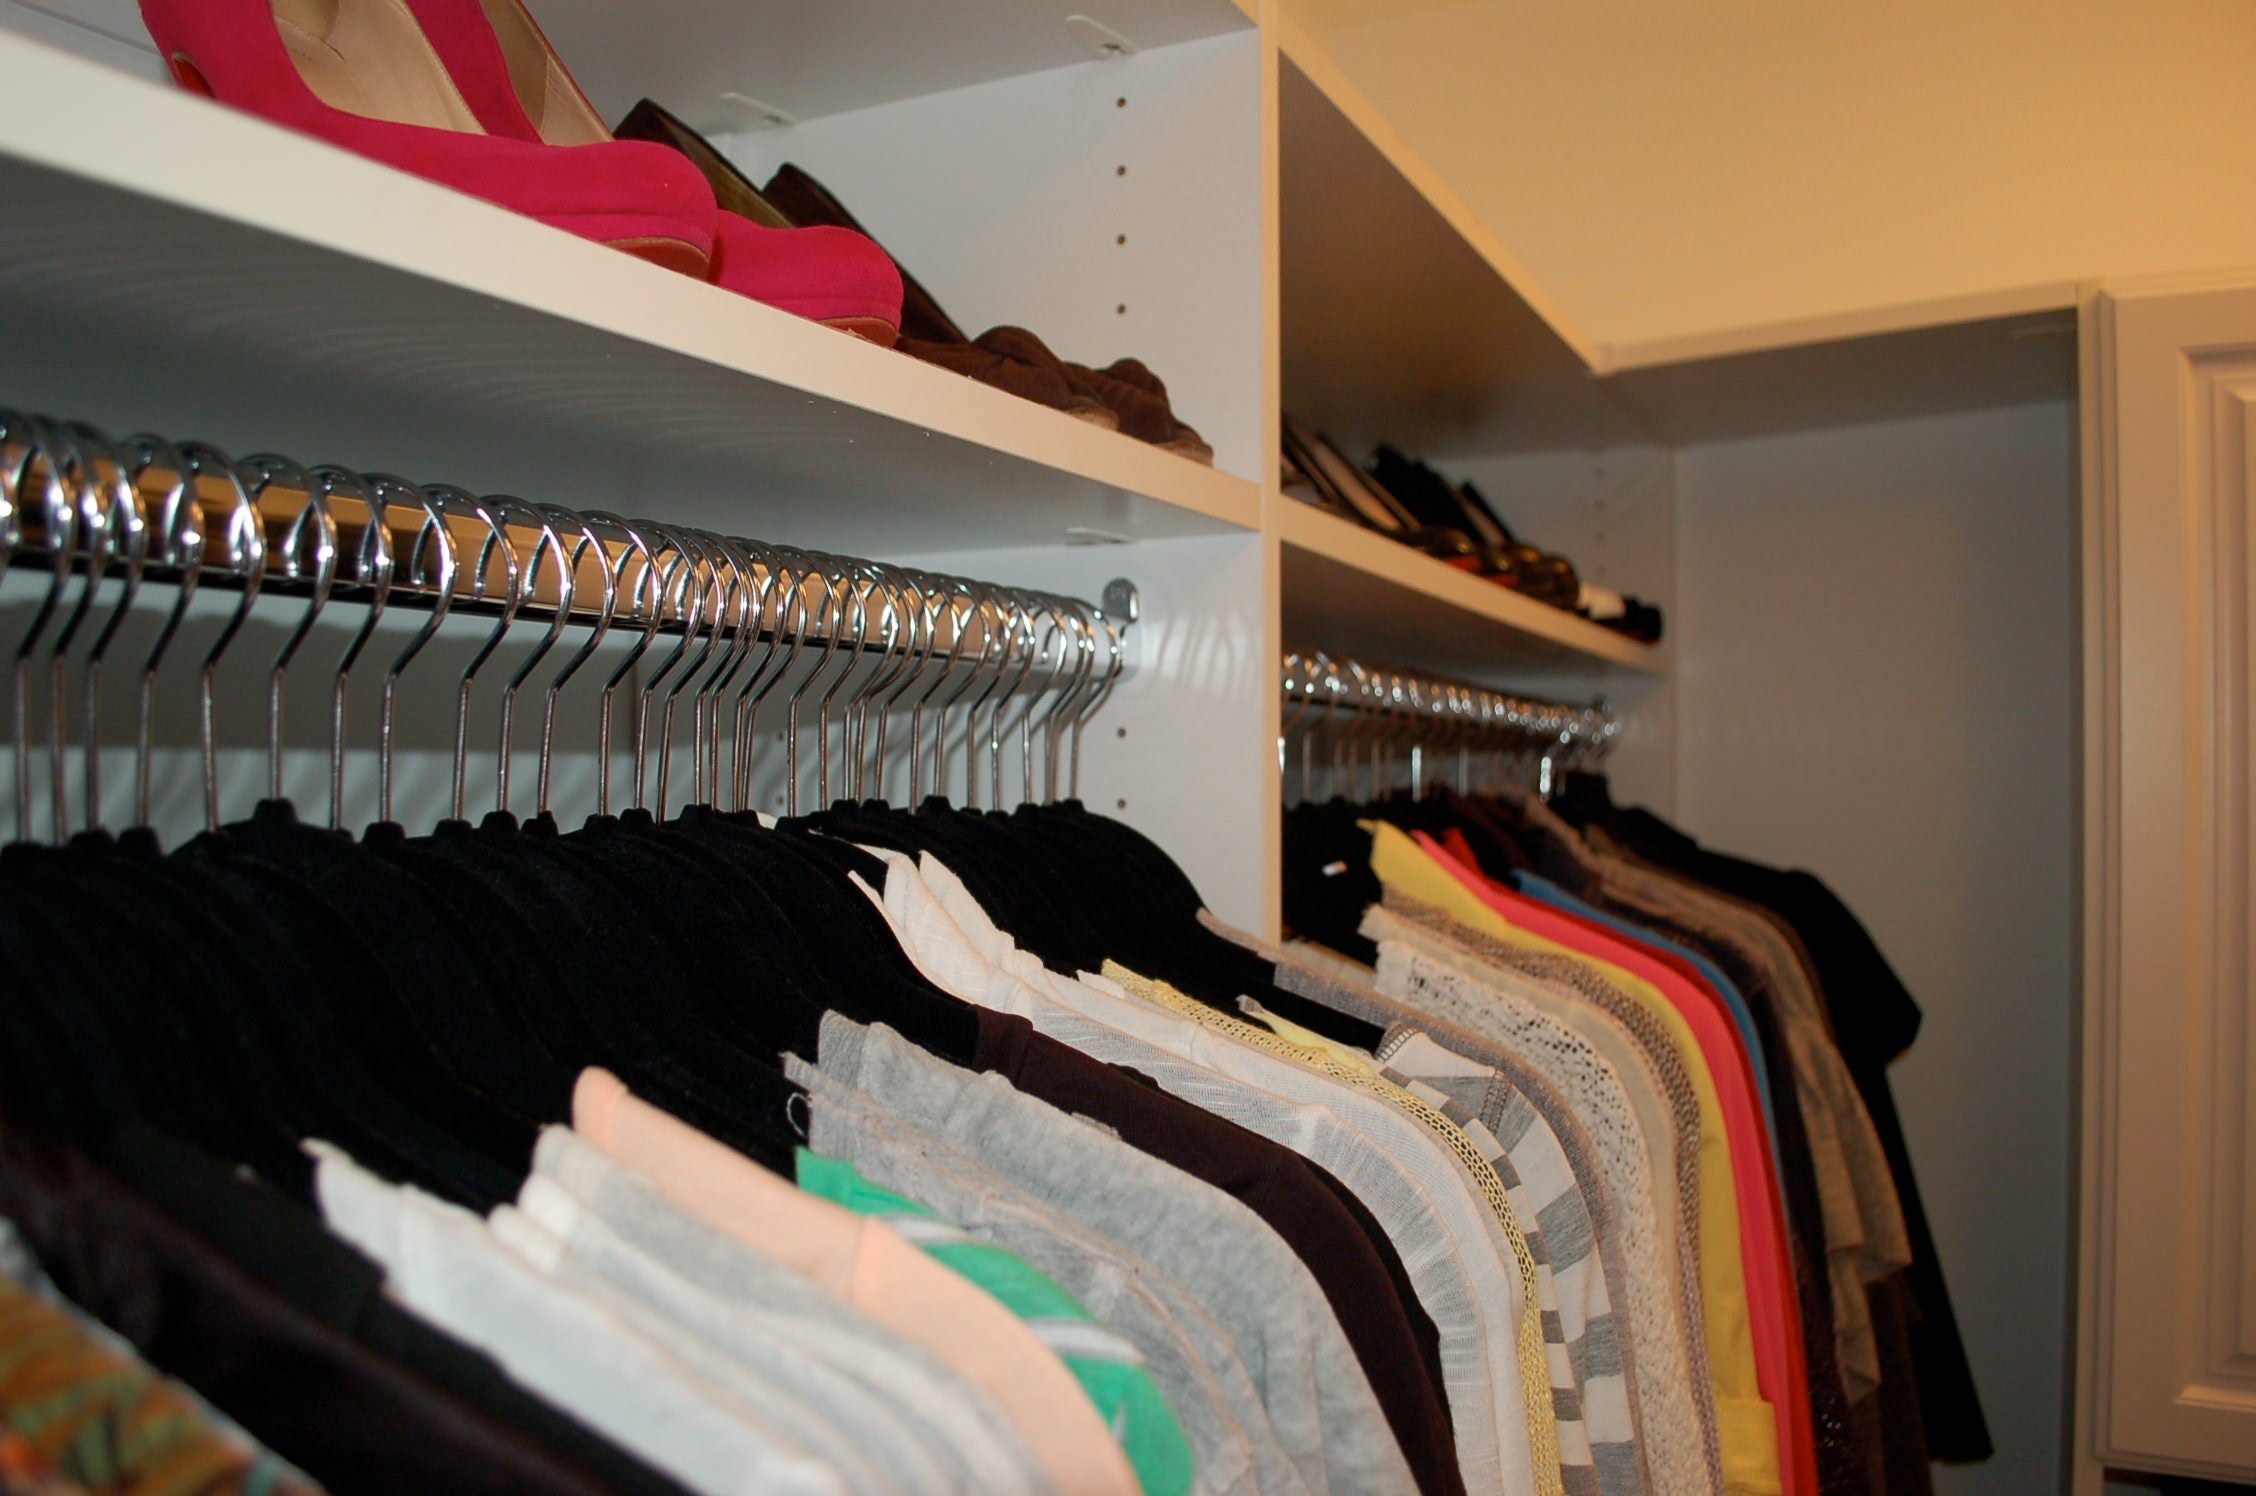 organized closet, Erin Vondra, Imperfect Polish, black hangers, color coded, Chicago home